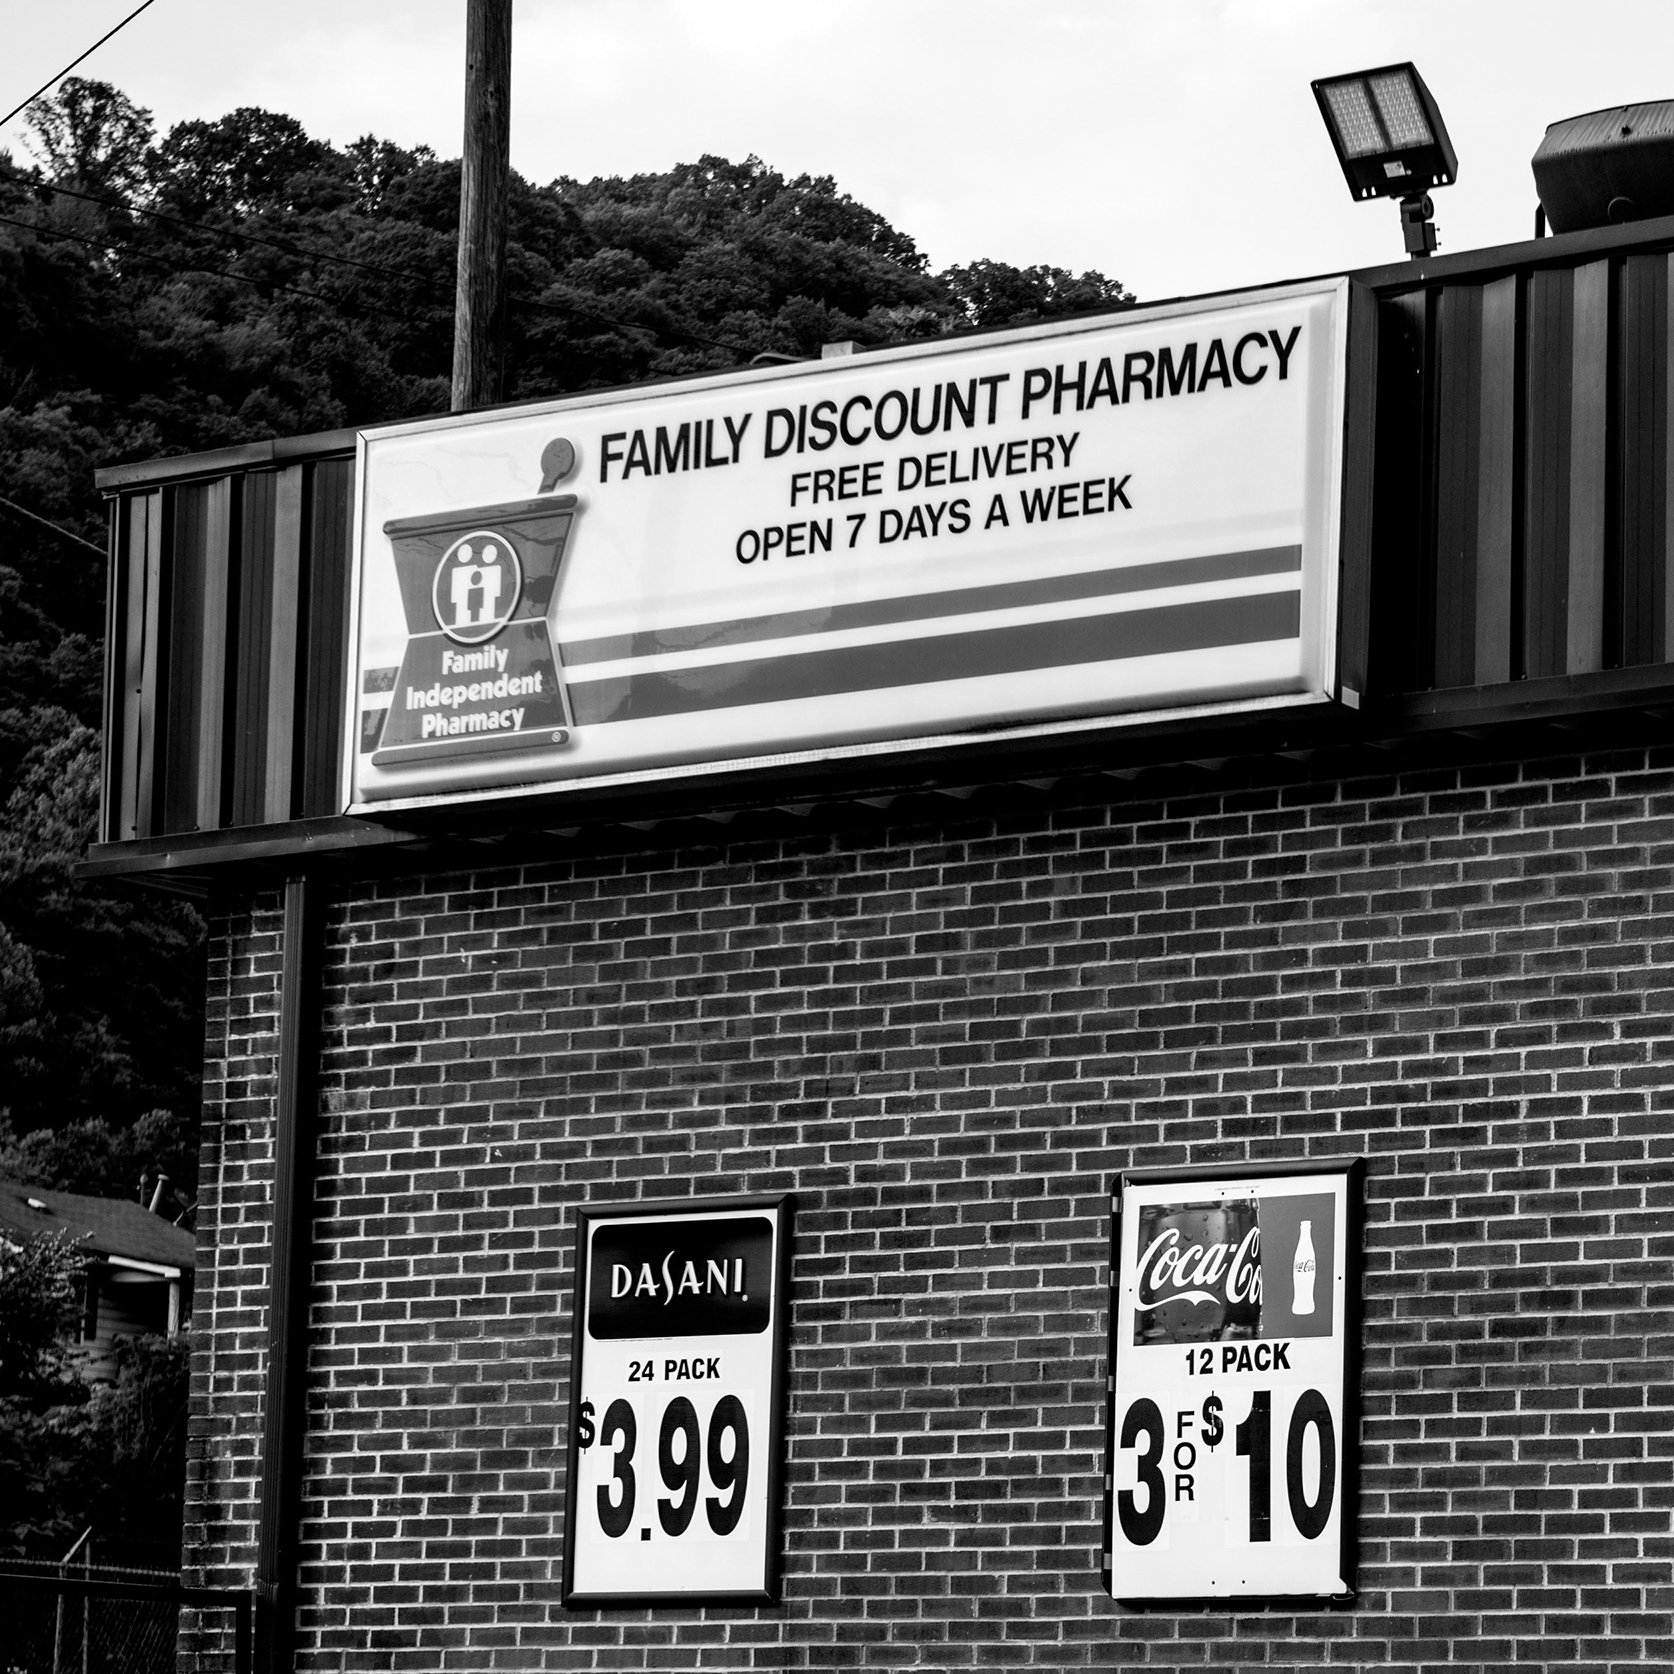 Family discount pharmacy